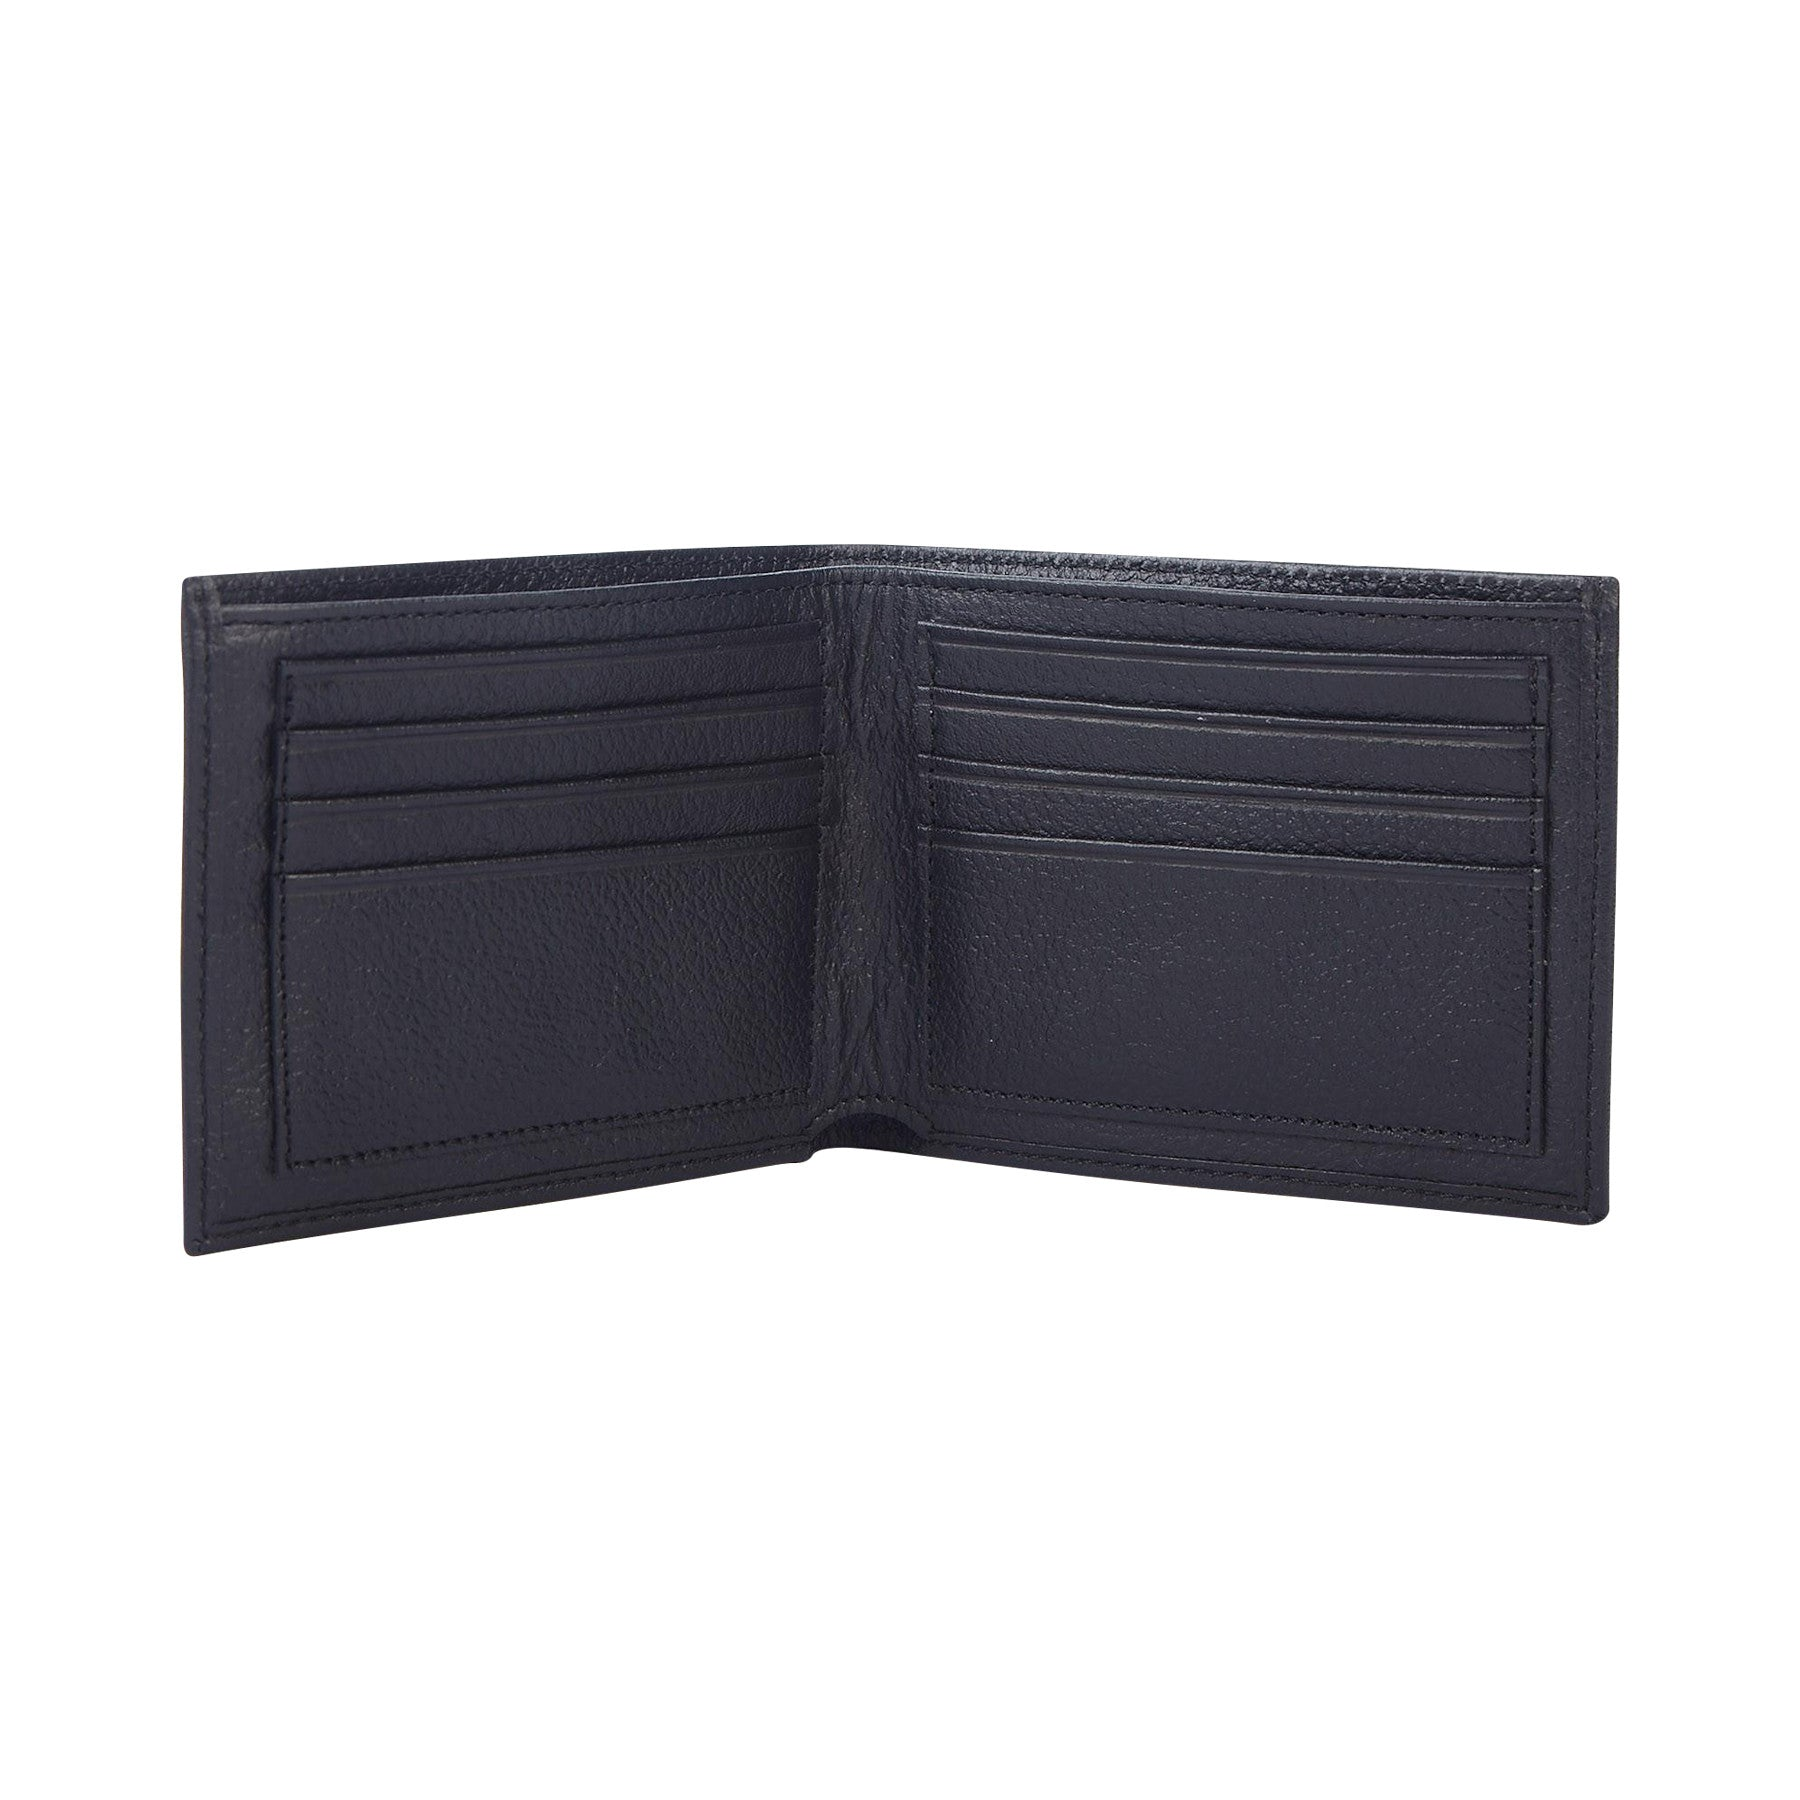 Men's Bi-fold Wallet - The Gaspy Collection